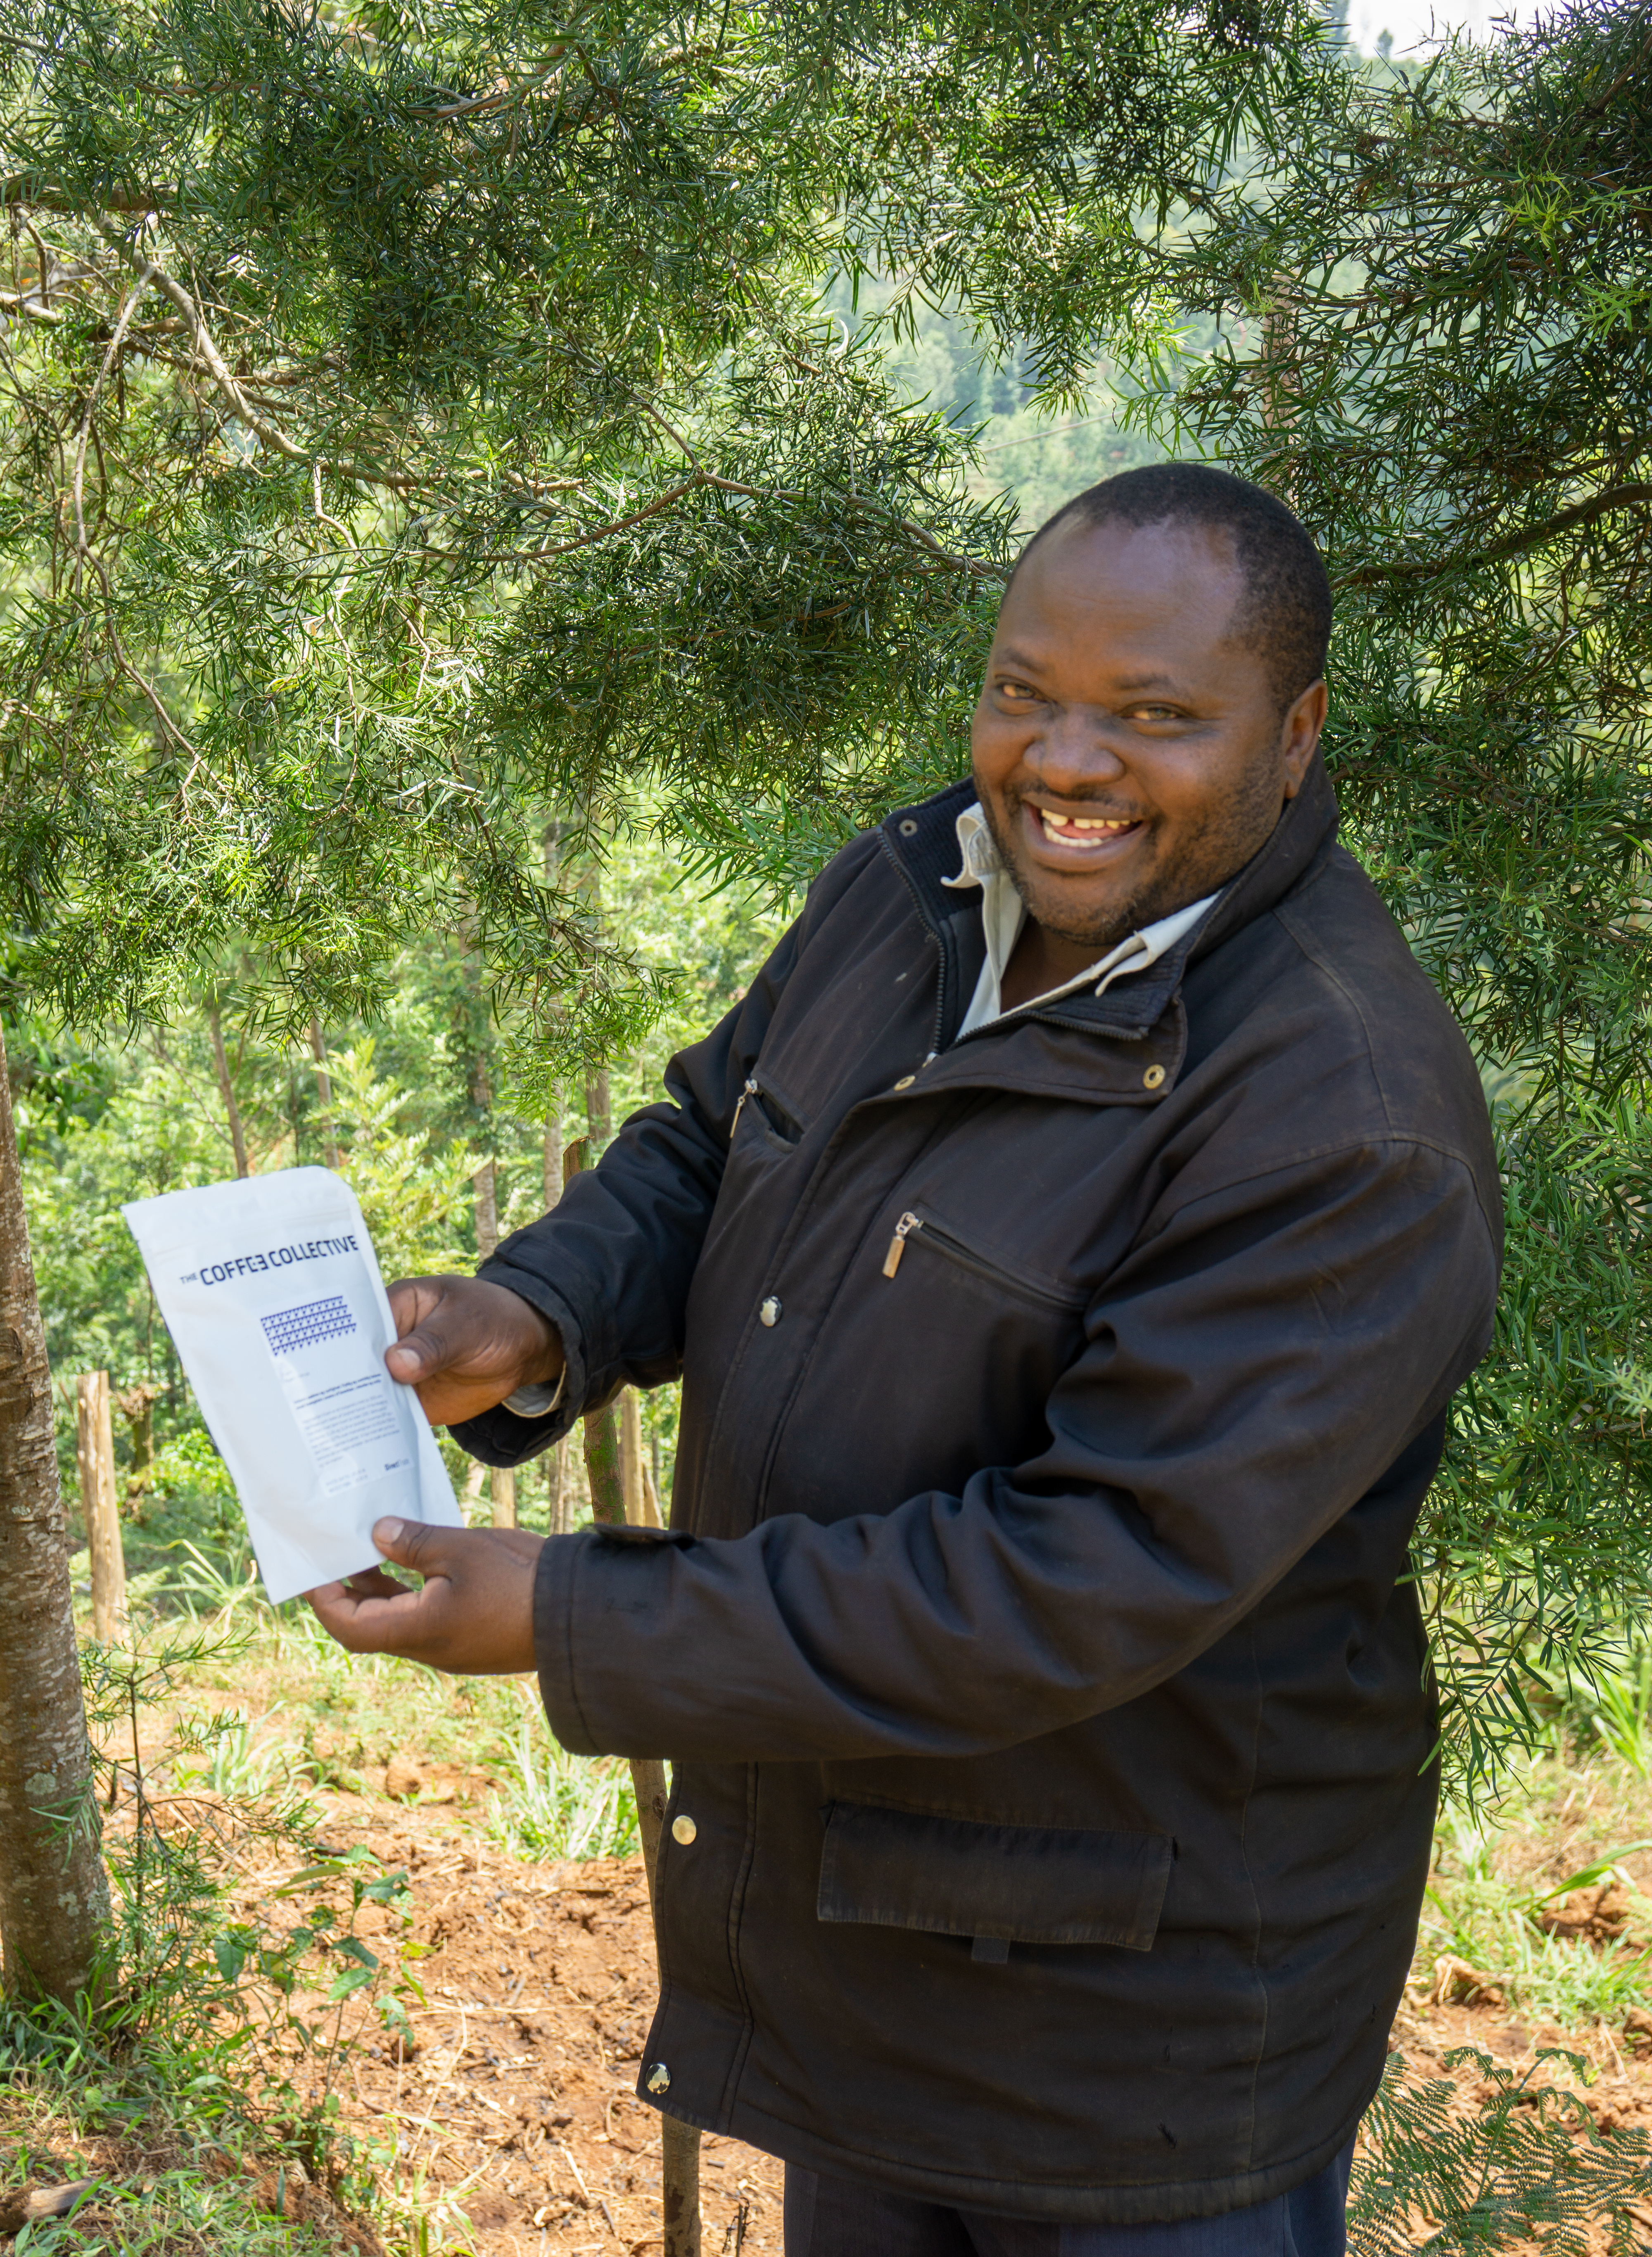 Kieni farmer Paul Mugo Waithaka is very happy to get a bag of his own coffee